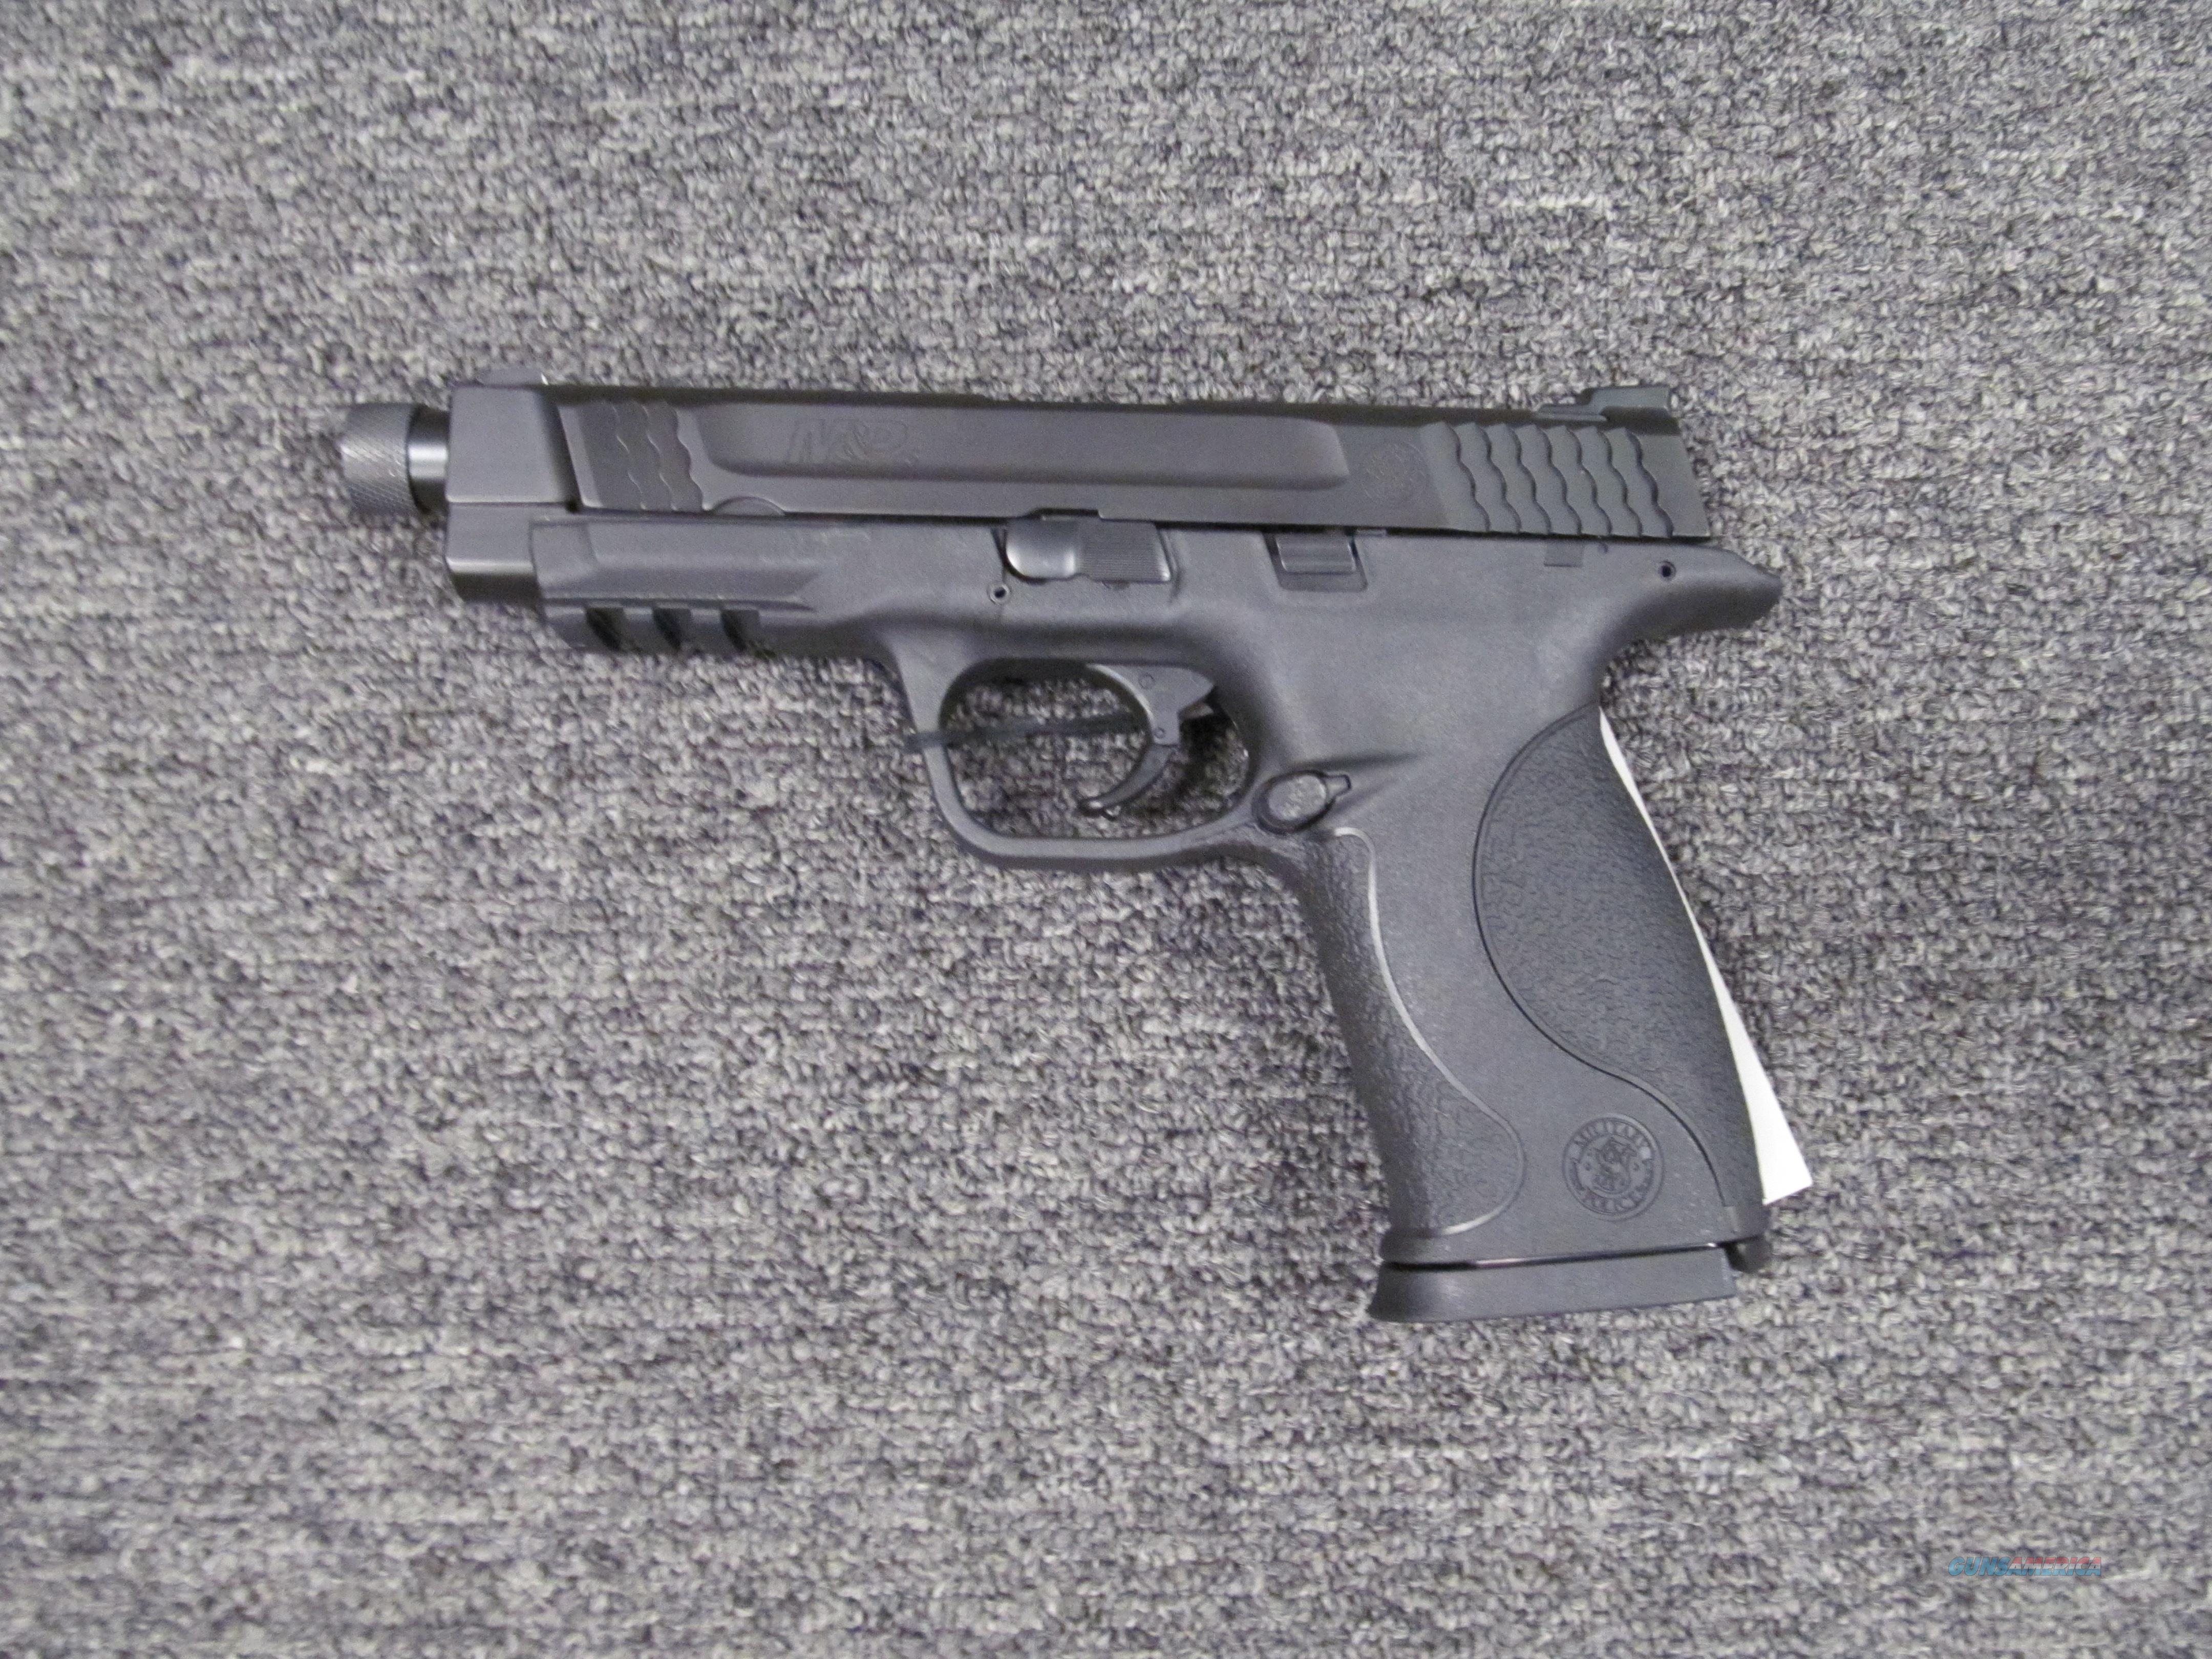 Smith&Wesson M&P 45  Guns > Pistols > Smith & Wesson Pistols - Autos > Polymer Frame